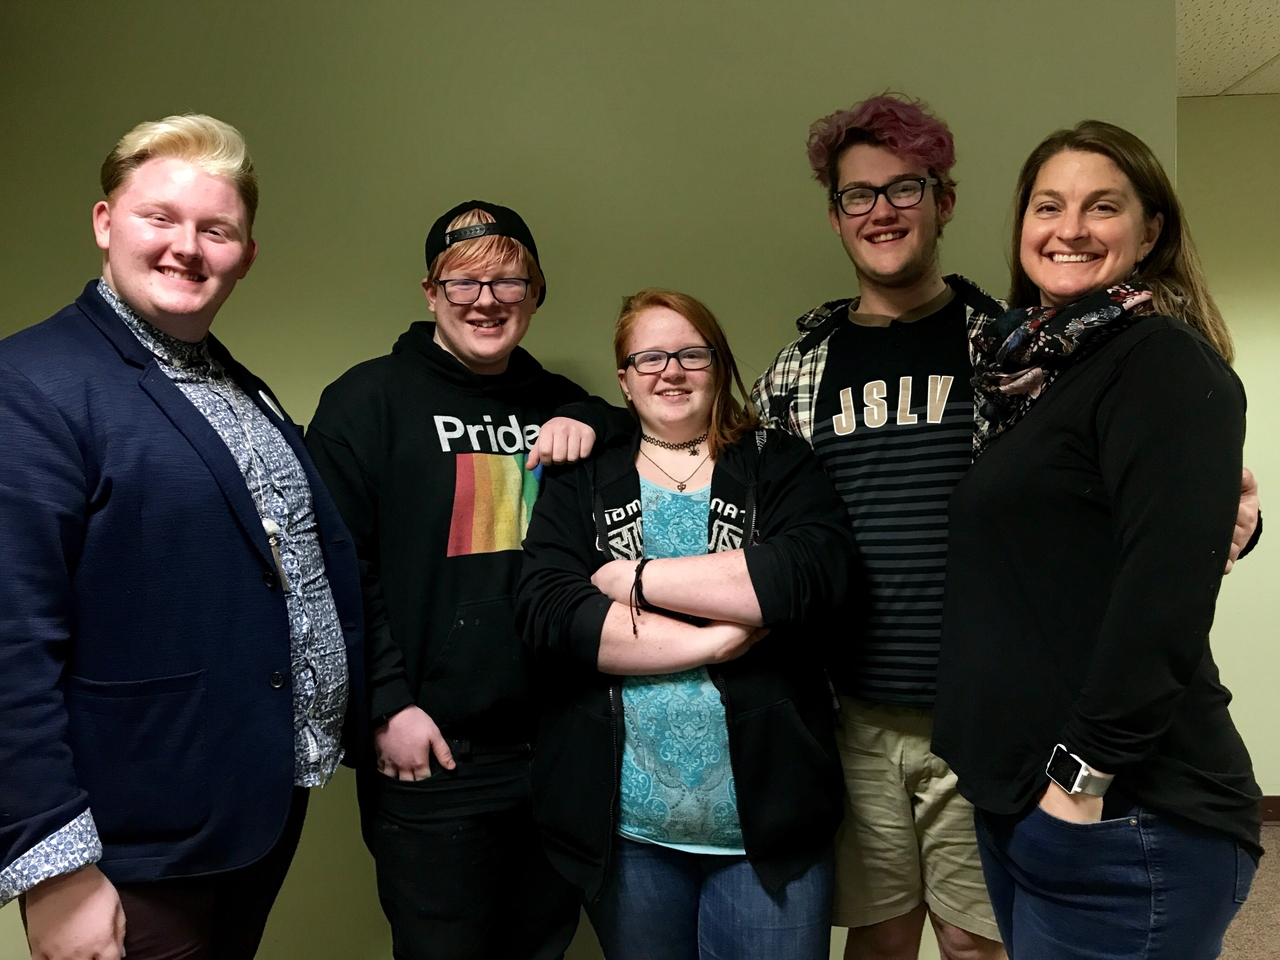 Flathead Valley LGBTQ Youth Organize To Be, Find Allies